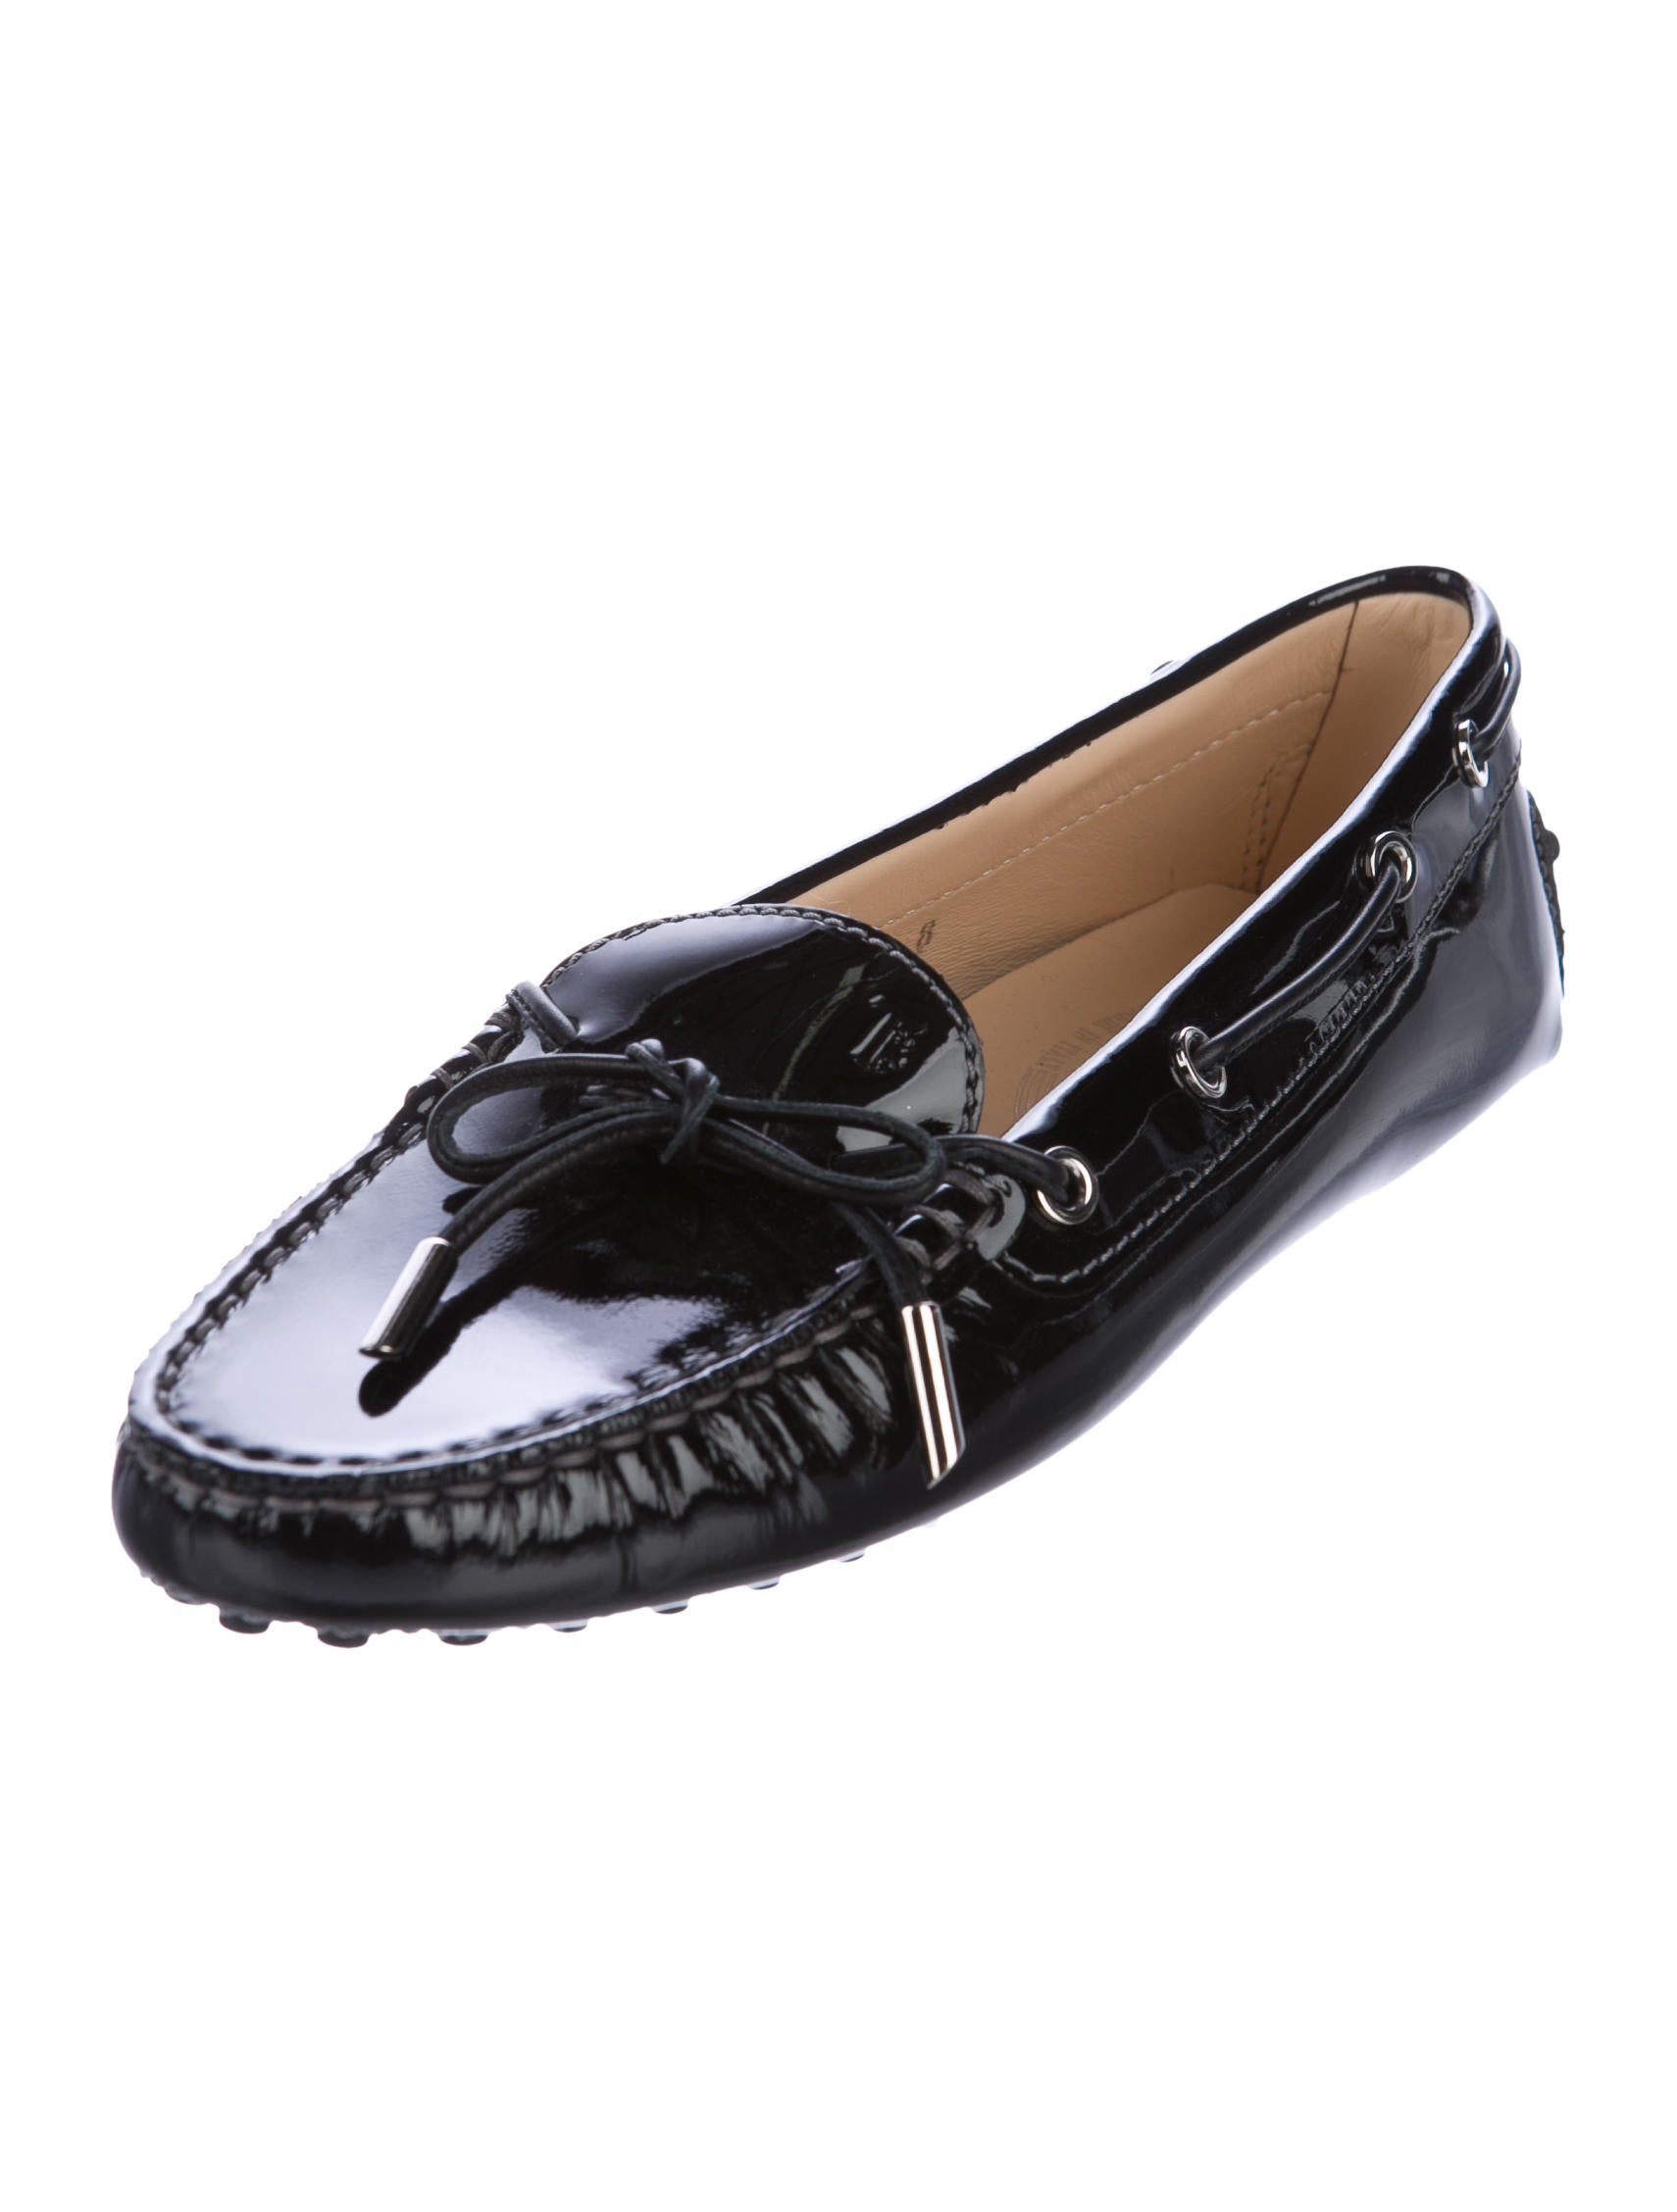 ★Patent Leather Loafer Pumps Saint Laurent★ Find for discount Patent Leather Loafer Pumps Saint Laurent check price now. on-line searching has currently gone a protracted manner; it's modified the way customers and entrepreneurs do business the.